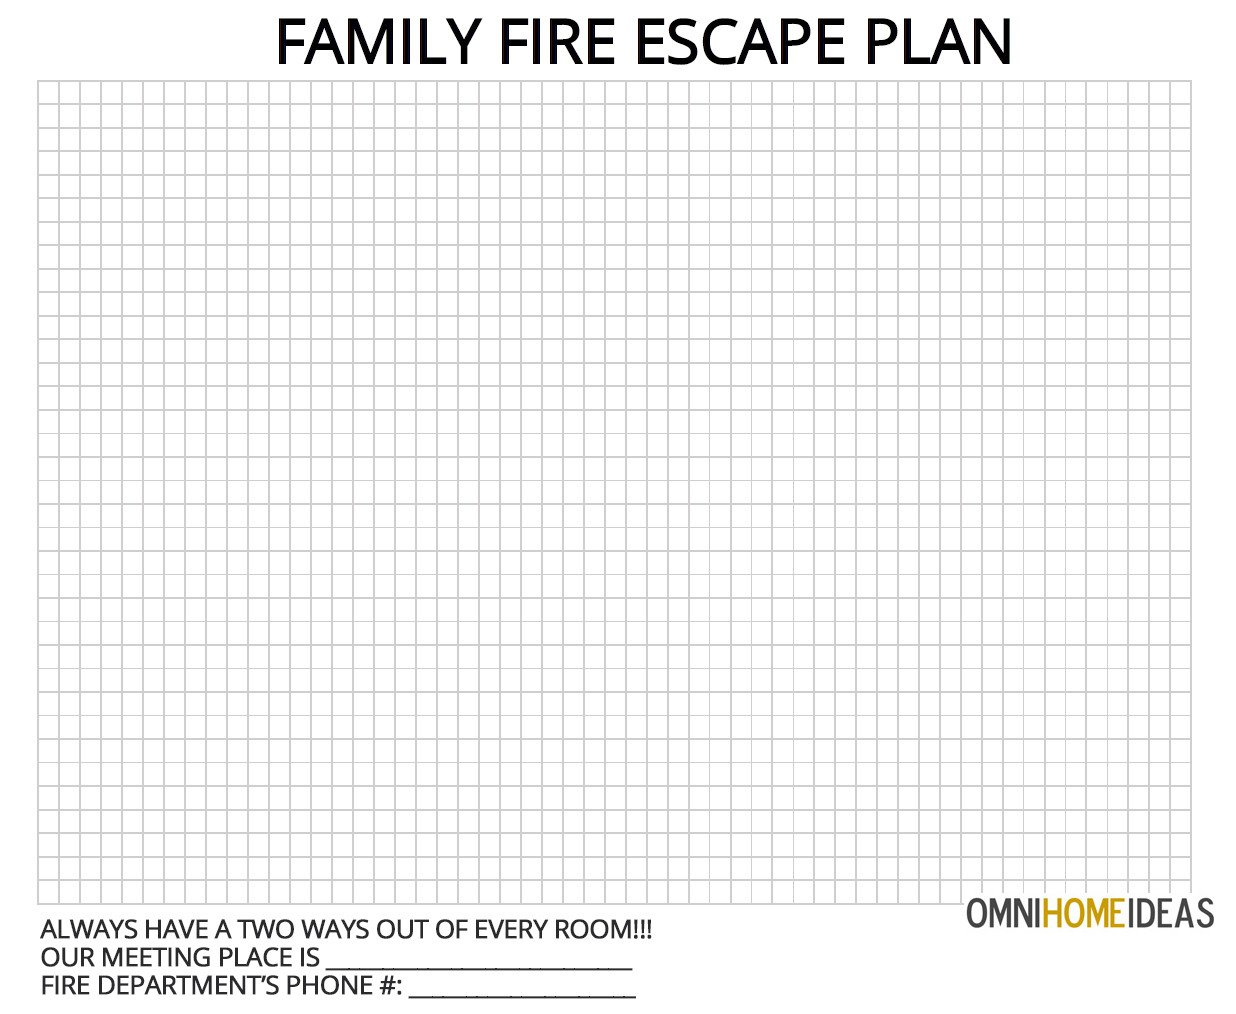 Printable Fire Escape Plan Template How to Make A Fire Escape Plan for Home with Printable